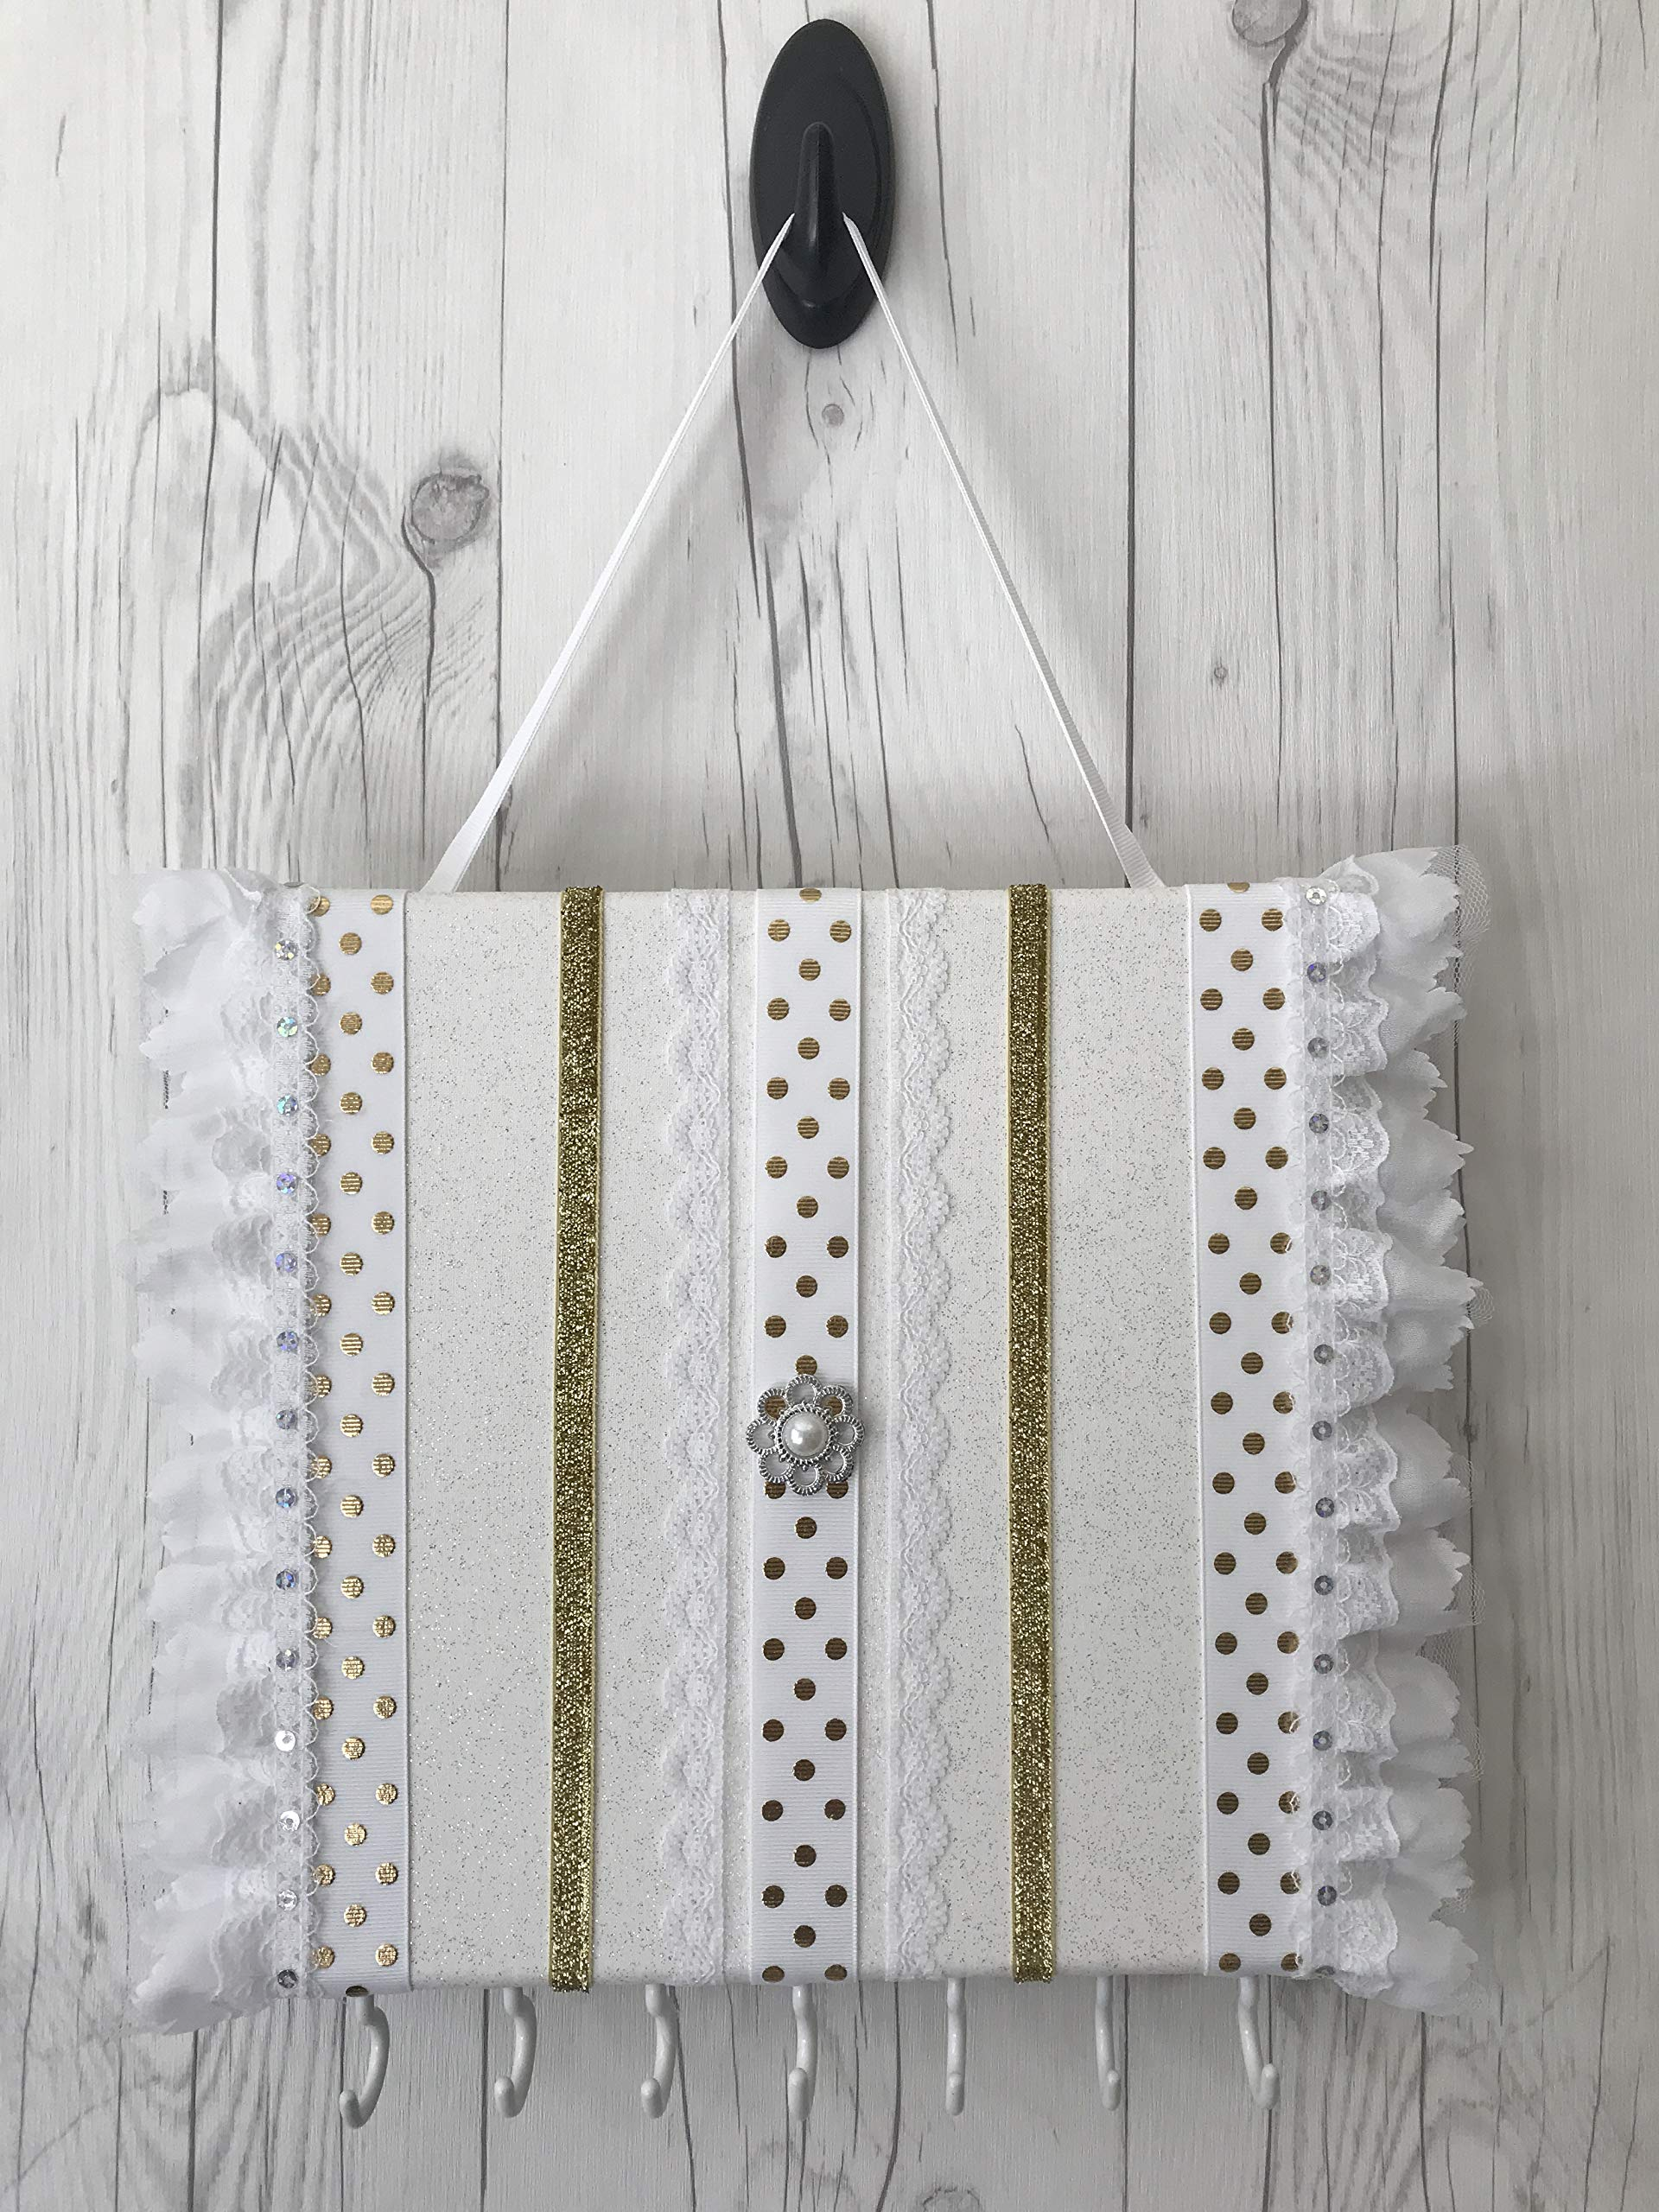 Bead&Cord 10''x10'' Canvas Hair Bow and Baby Elastic Headband Organizer (White & Lace Gift Set) by Bead&Cord (Image #2)